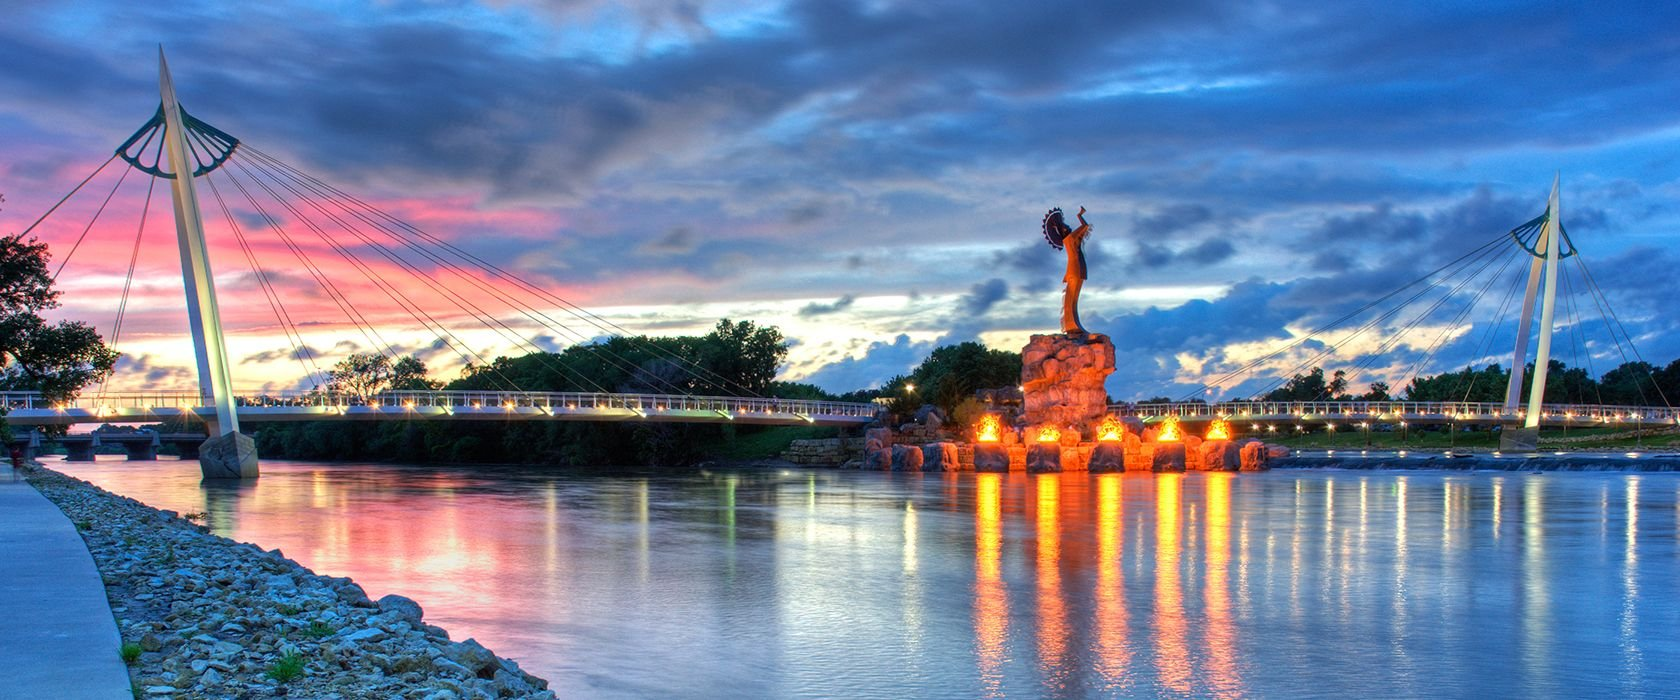 Wichita, KS